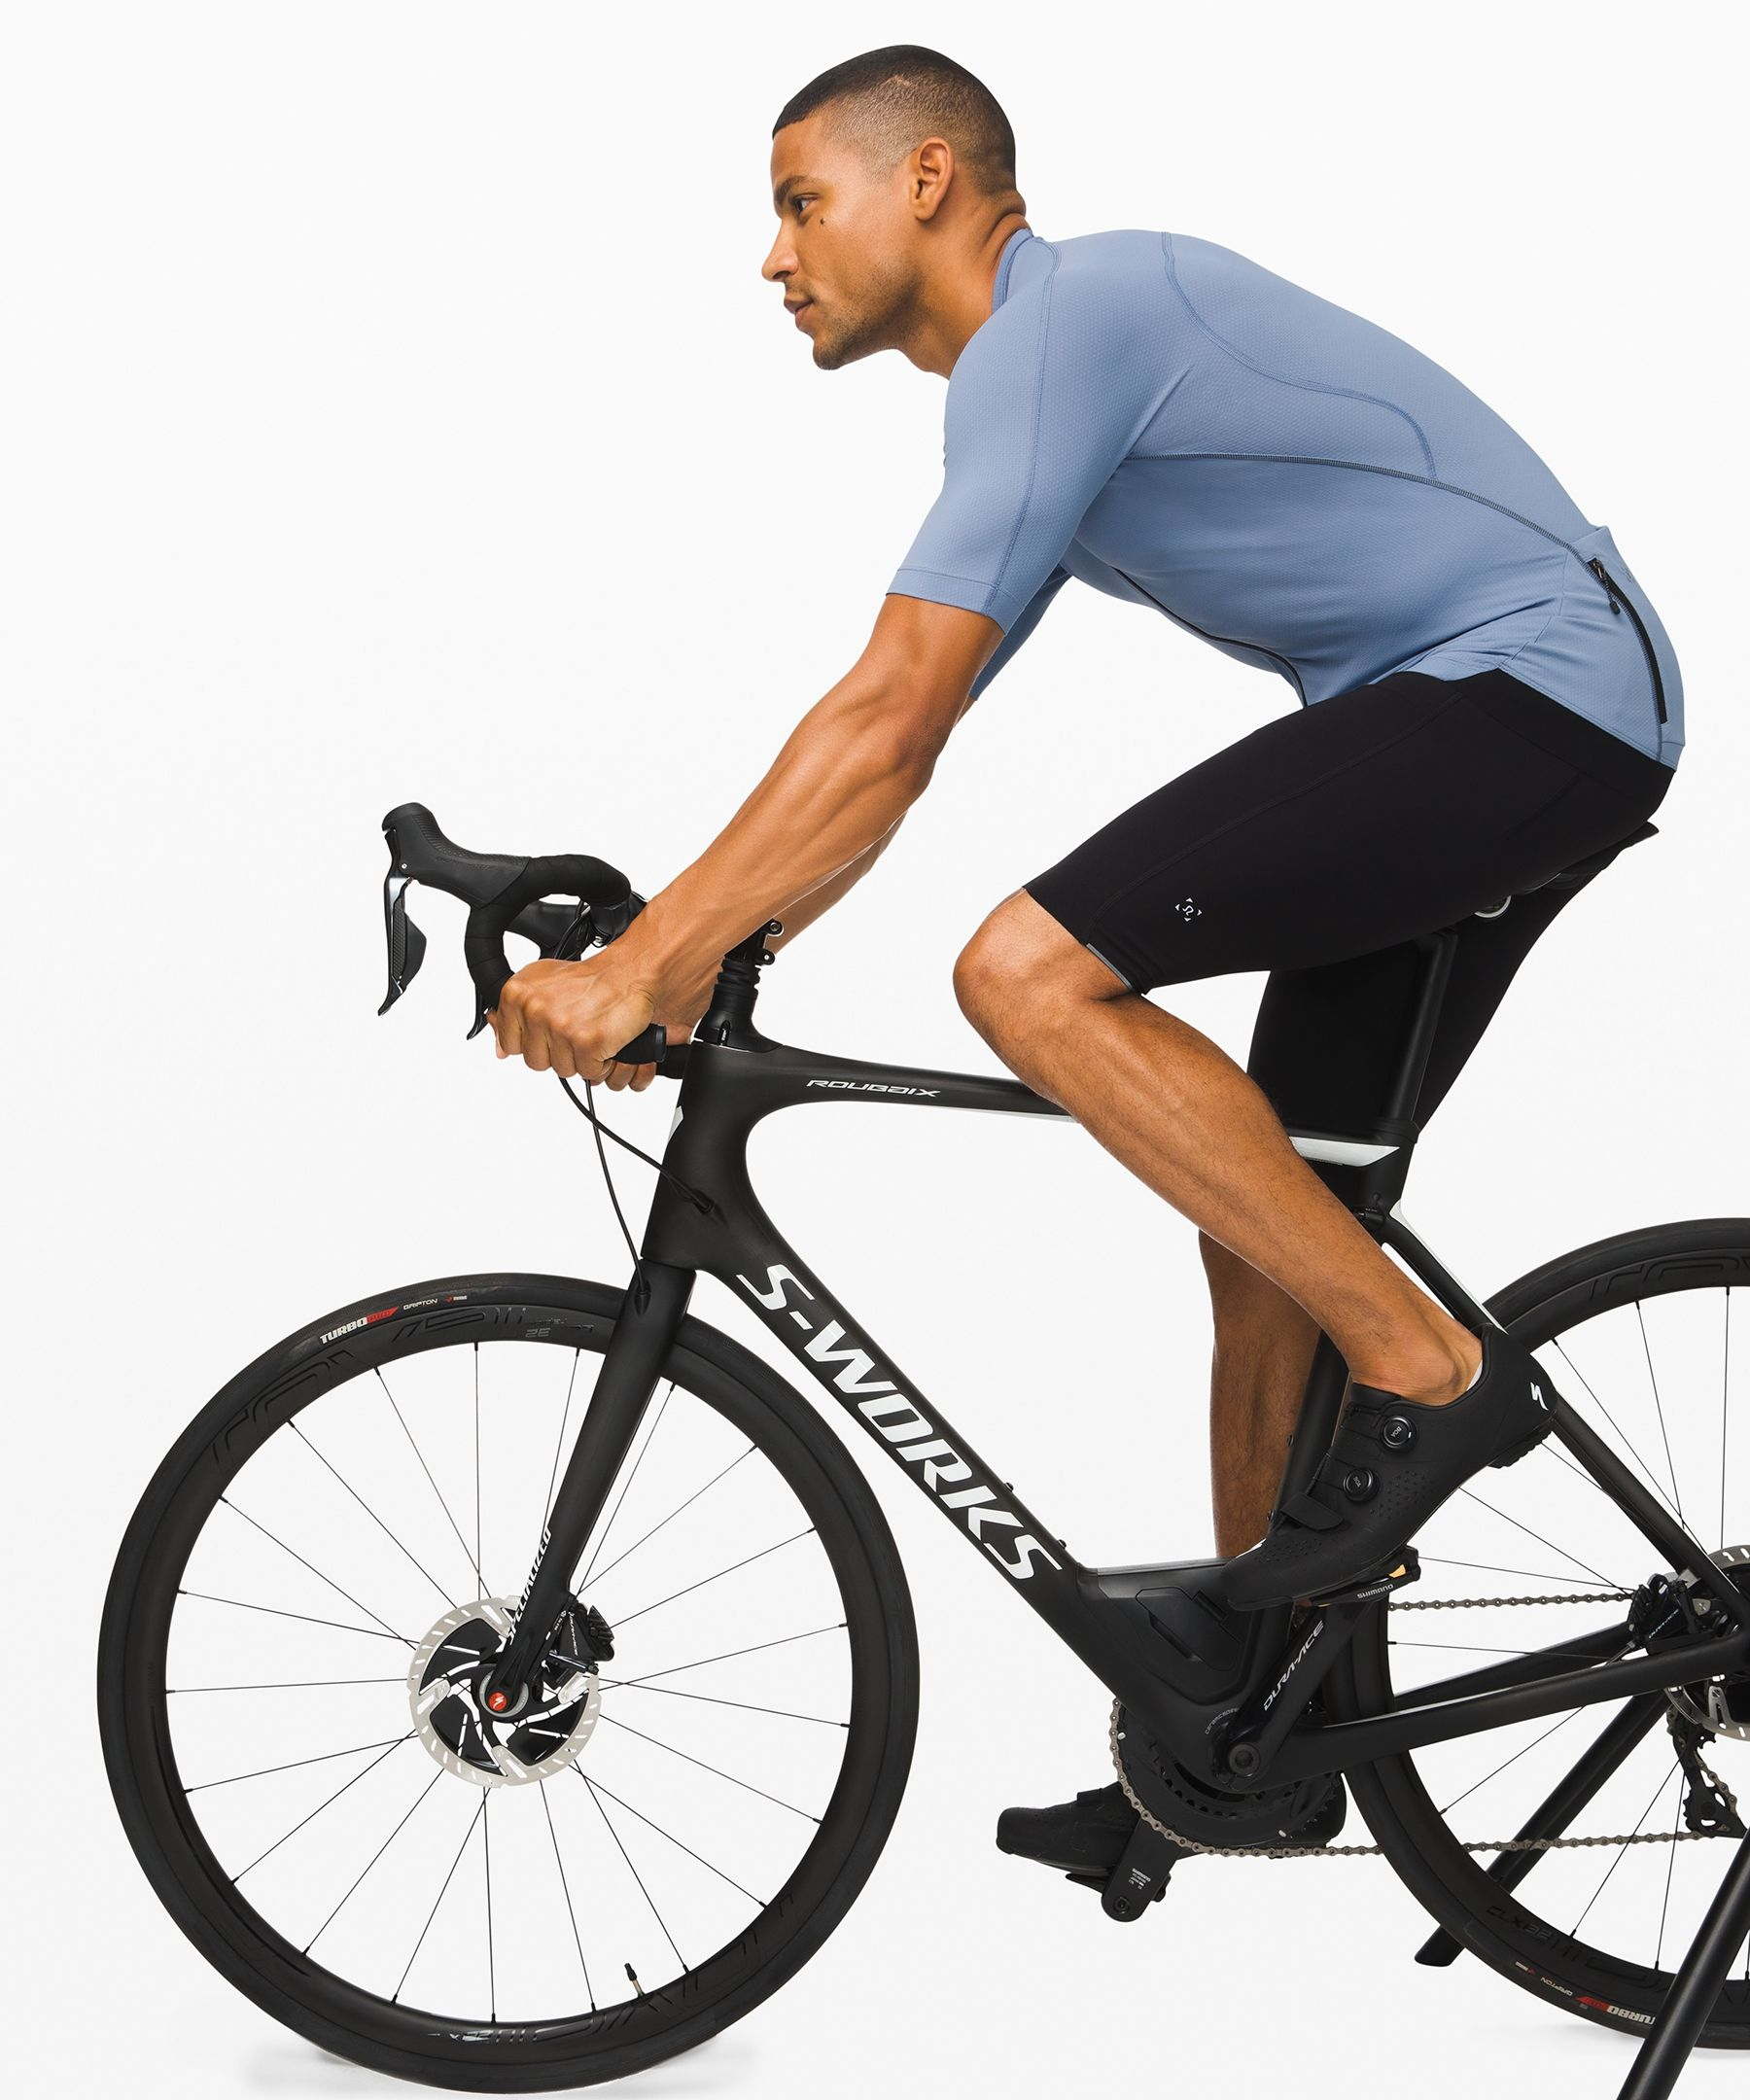 City To Summit Cycling Jersey Men S Short Sleeve Tops In 2020 Lululemon Men Cycling Cycling Jerseys